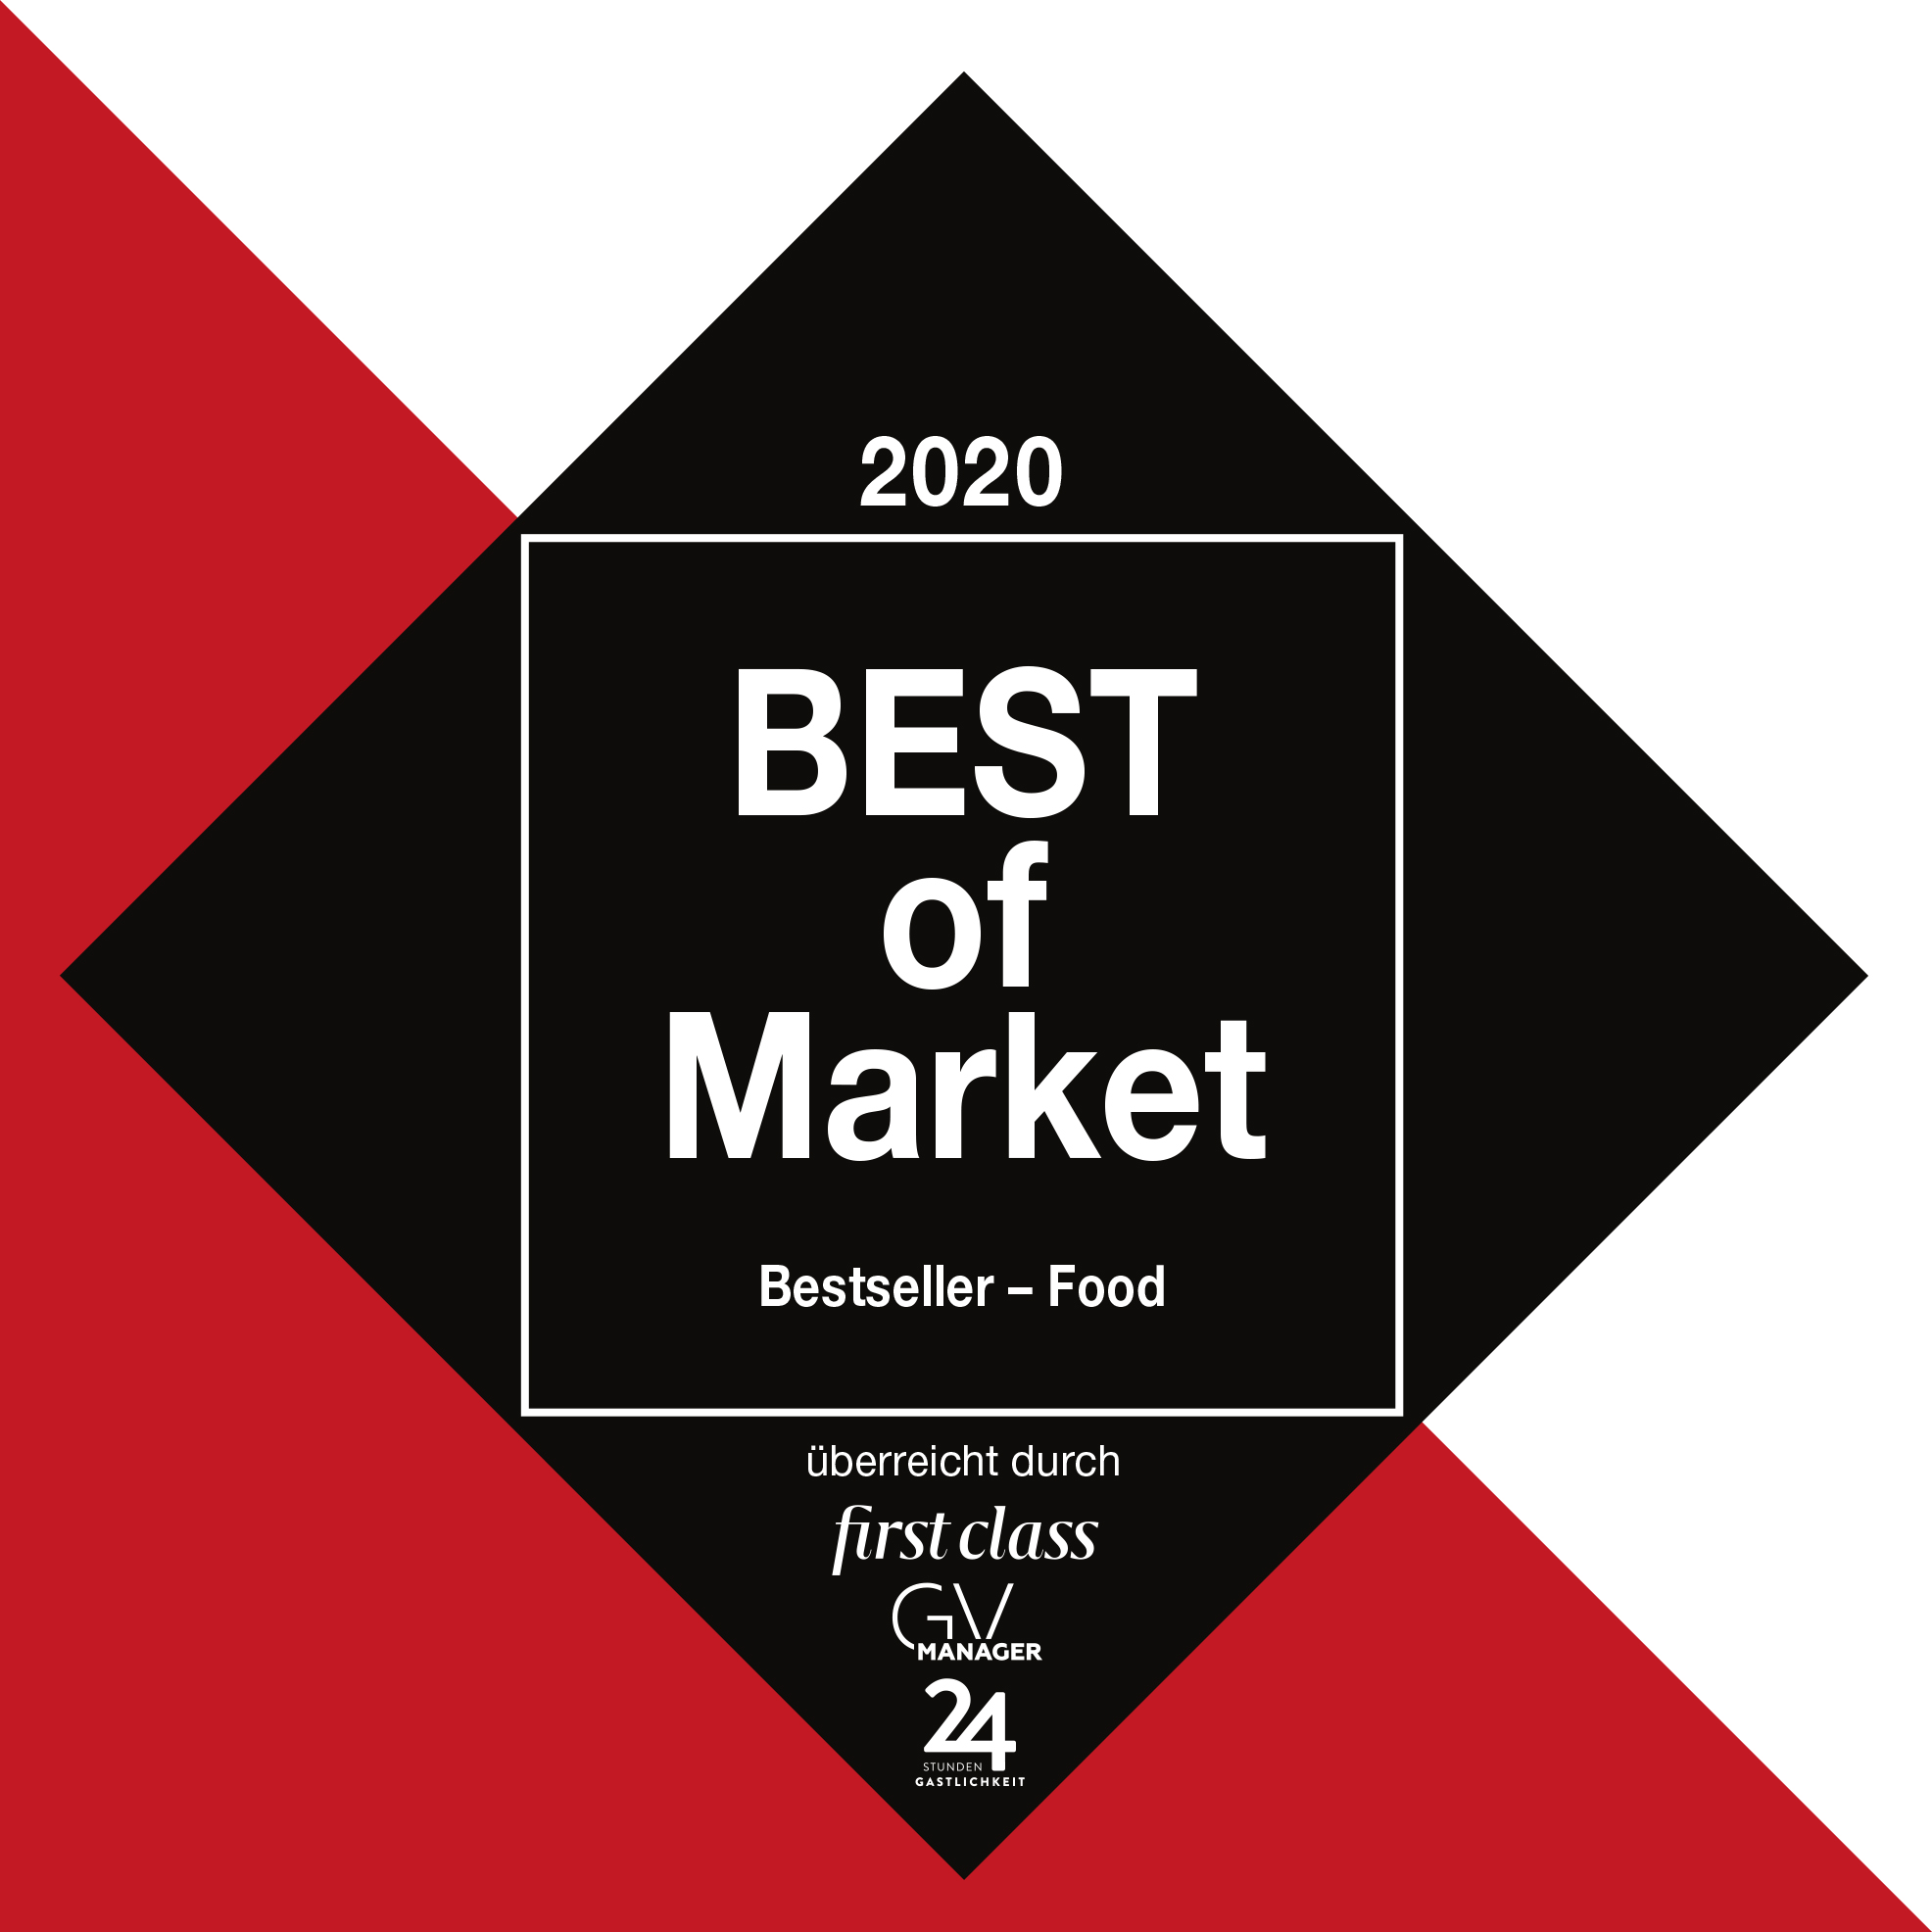 Best of Market Award 2020